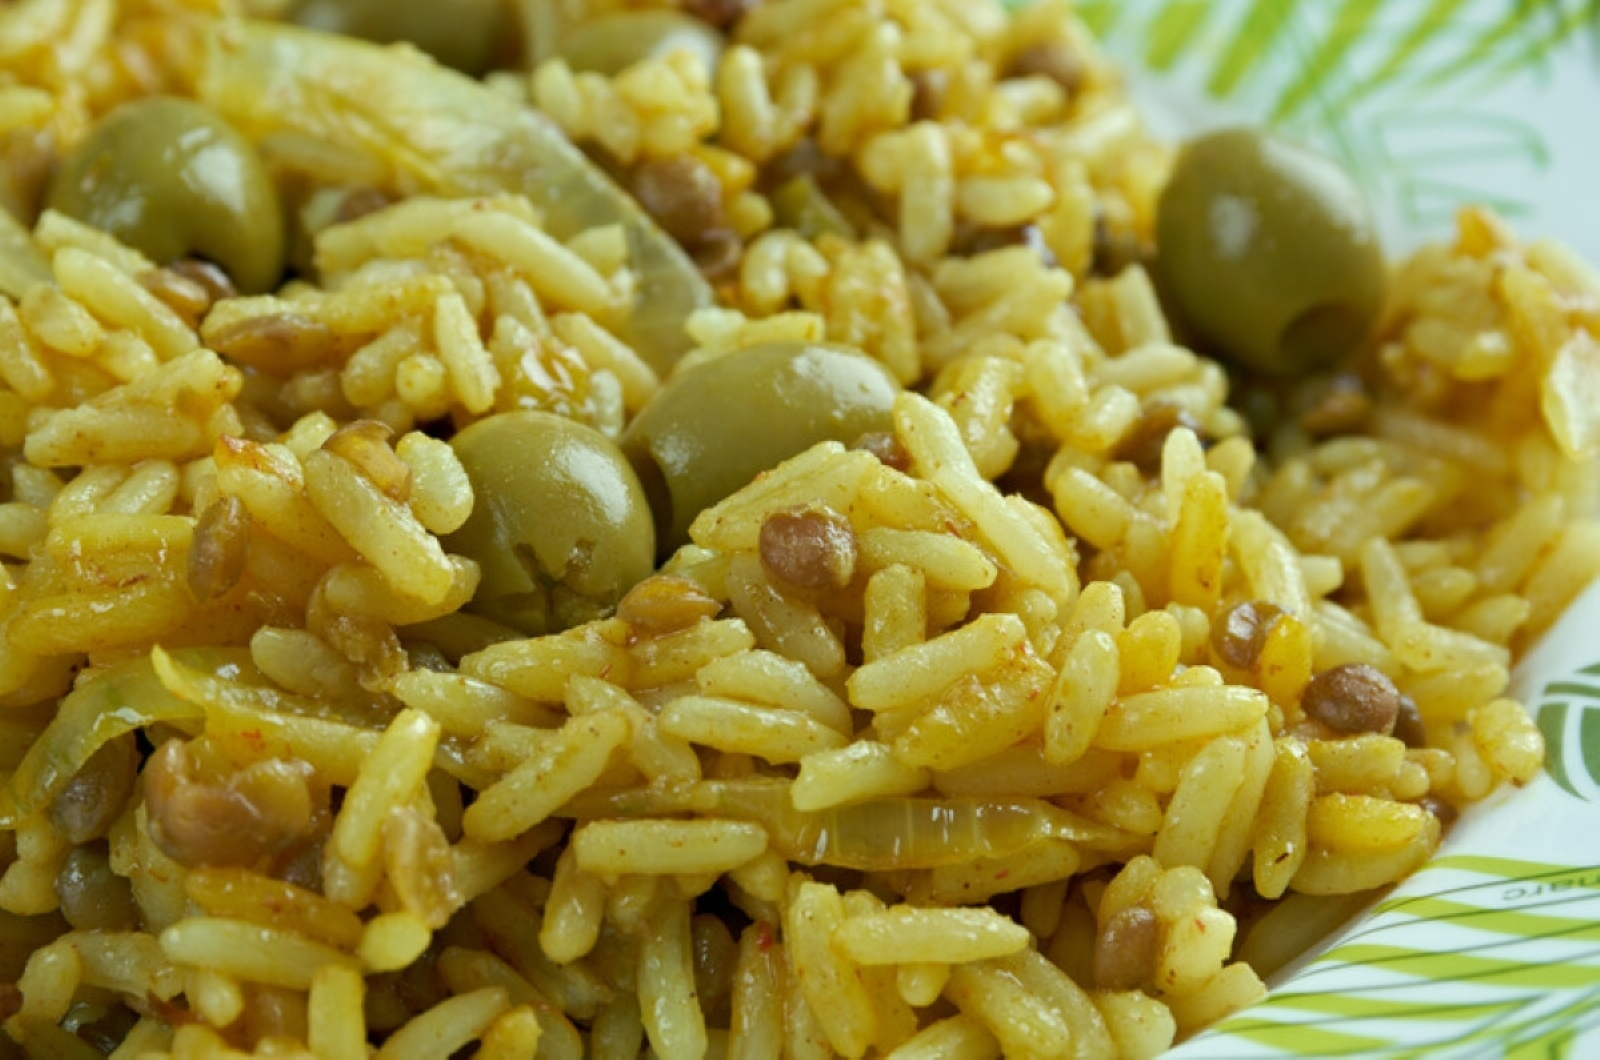 Up close photo of Arroz con Gandules showing the seasoned rice and pigeon peas